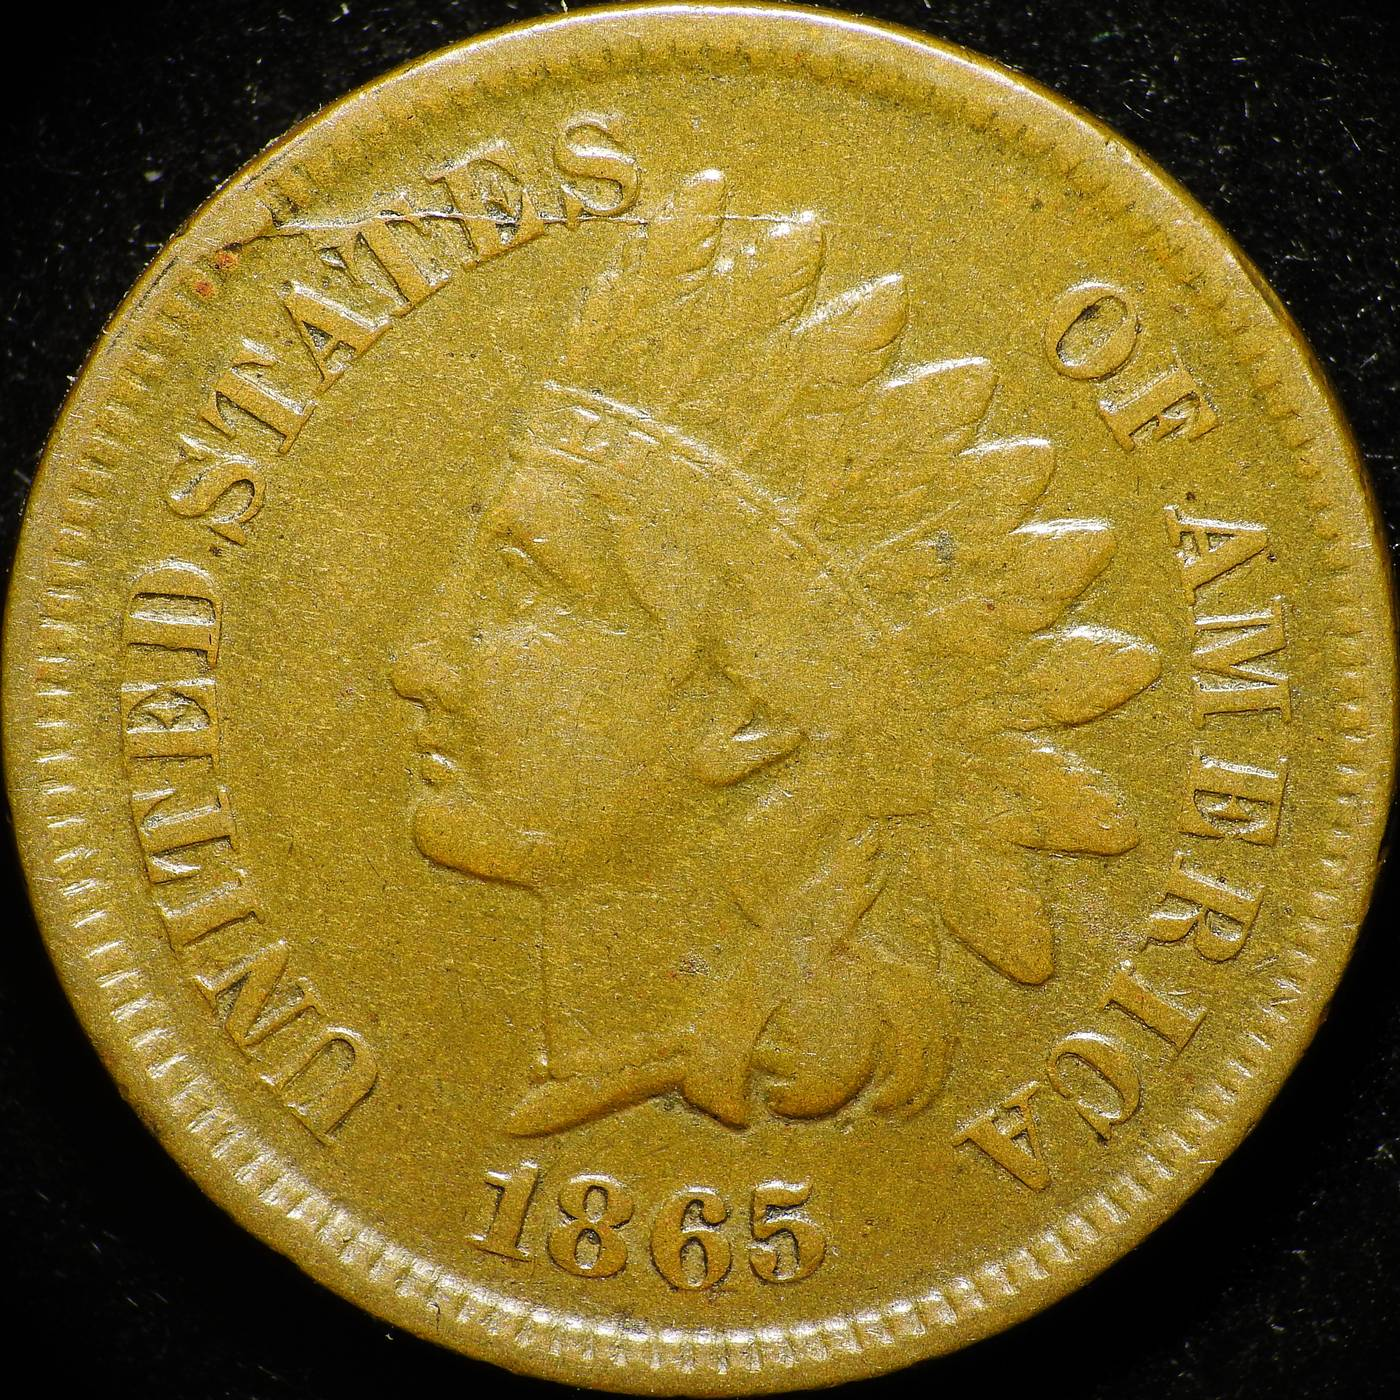 1865 Fancy 5 CRK-002 - Indian Head Penny